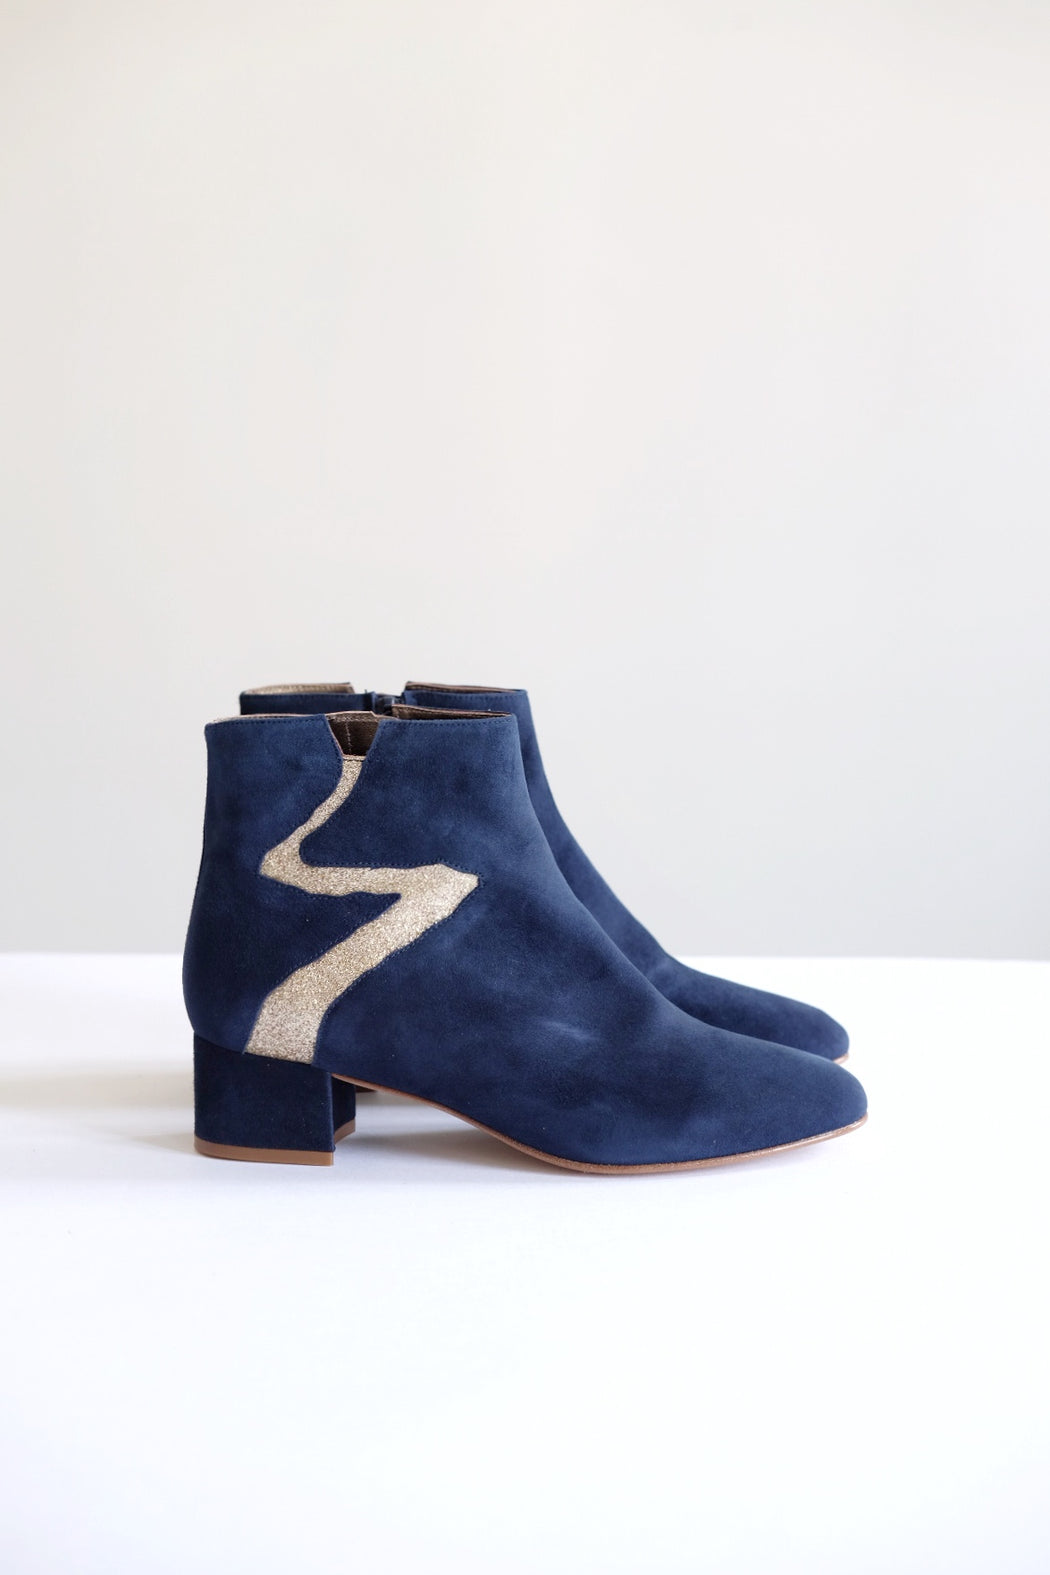 nabebeso shoes Patricia Blanchet bottines bonny Lyon